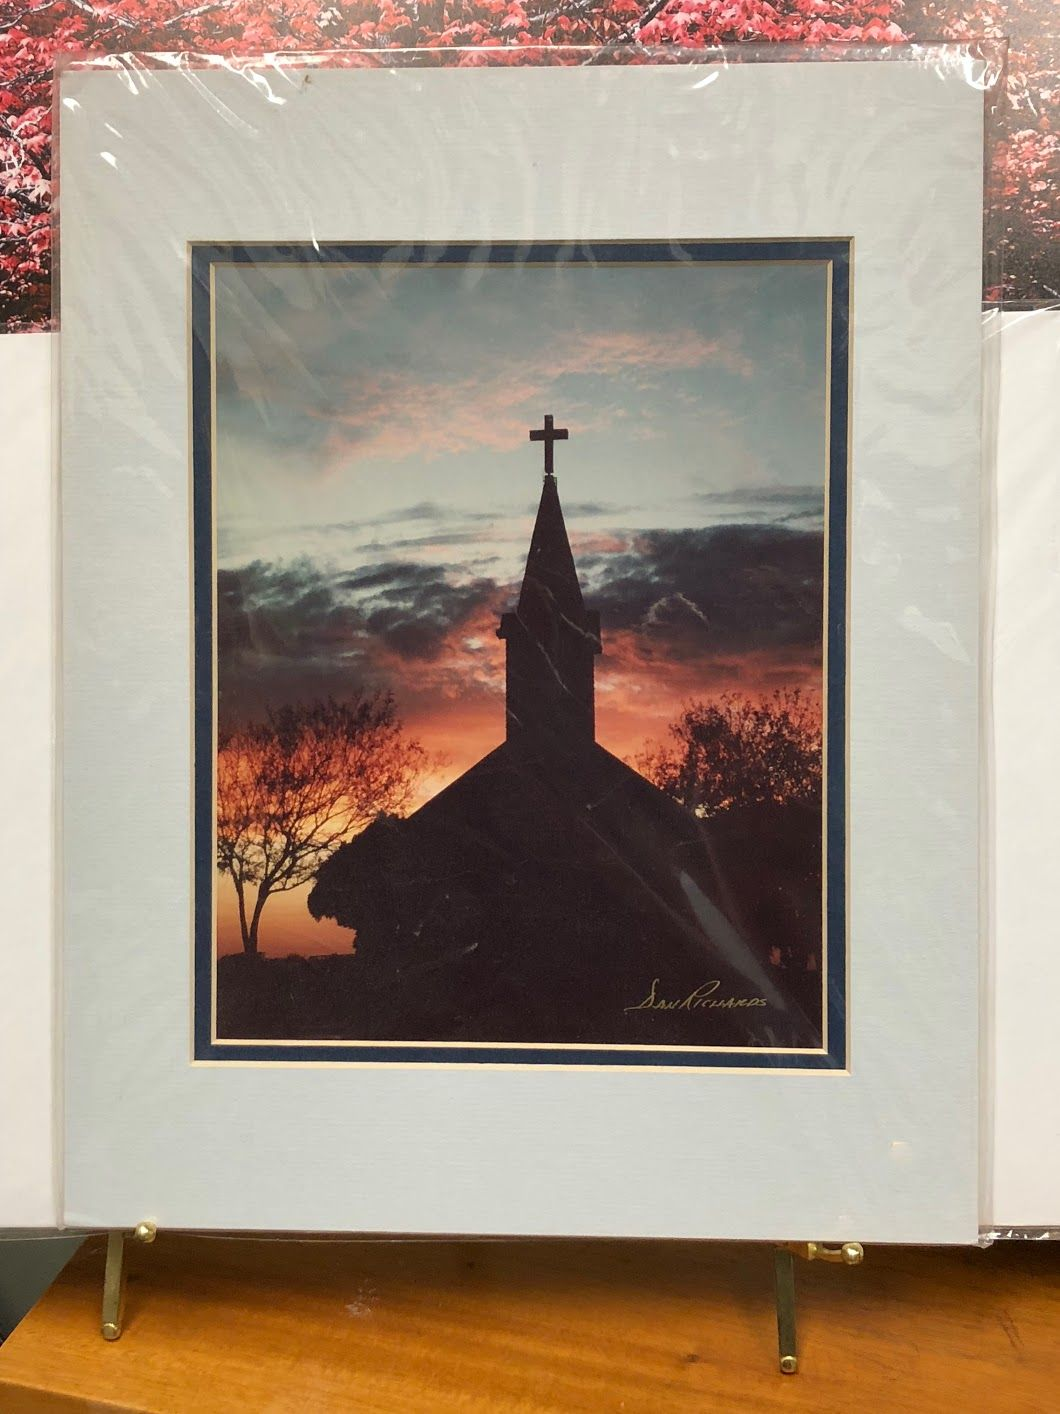 old church by dan richards 8 x 10 matted fits in 11 x 14 frame